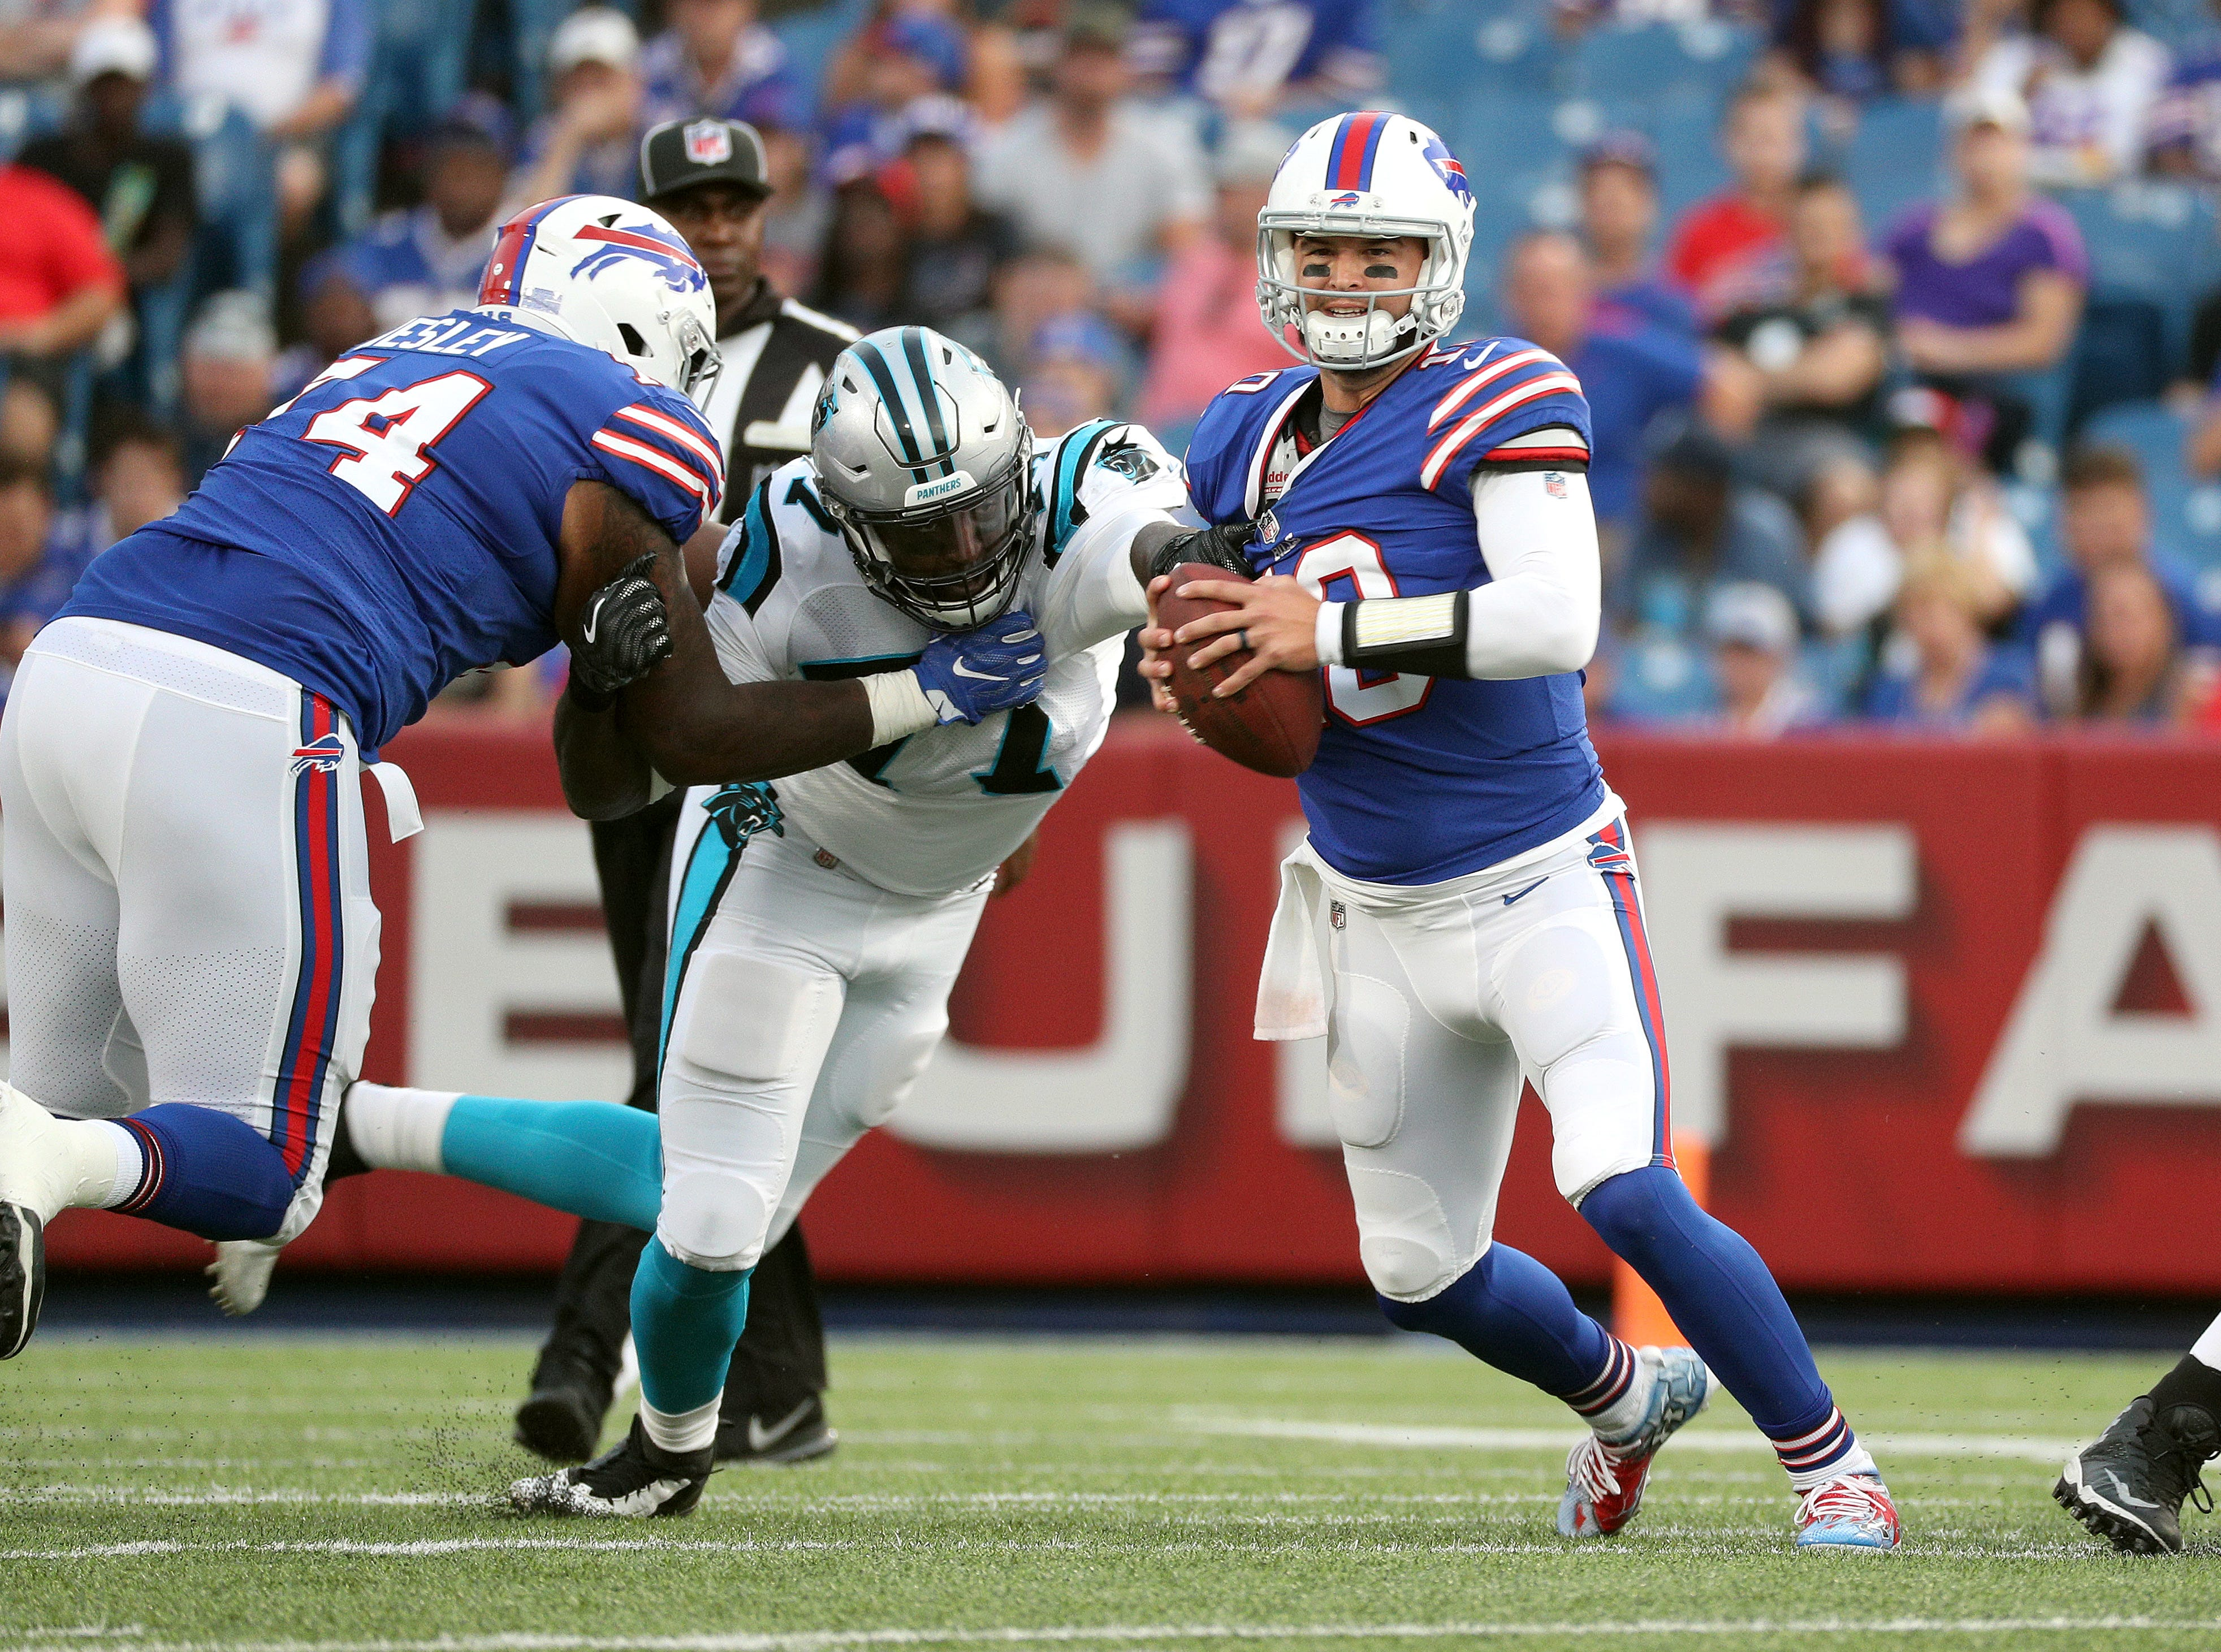 Bills quarterback AJ McCarron escapes the grasp of Carolina's Zach Moore.